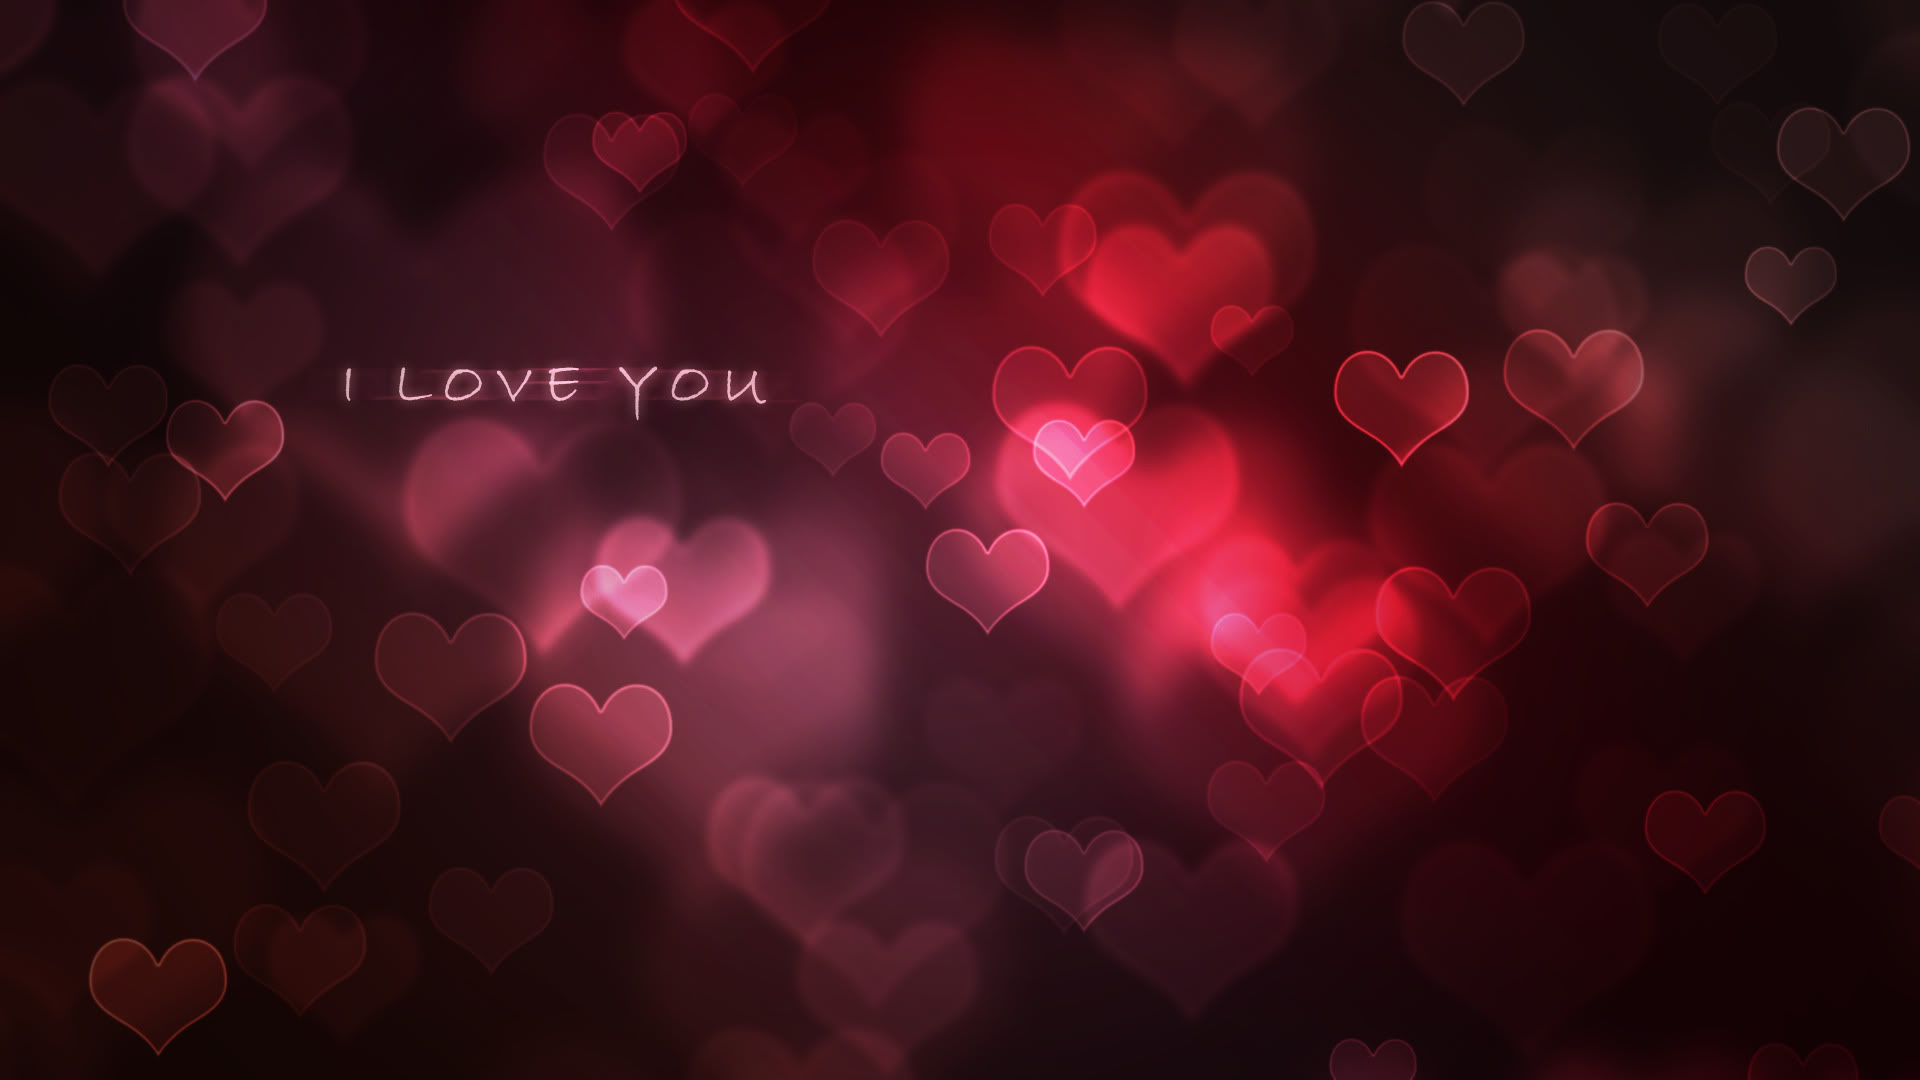 Romantic Background wallpaper 1920x1200 #28214